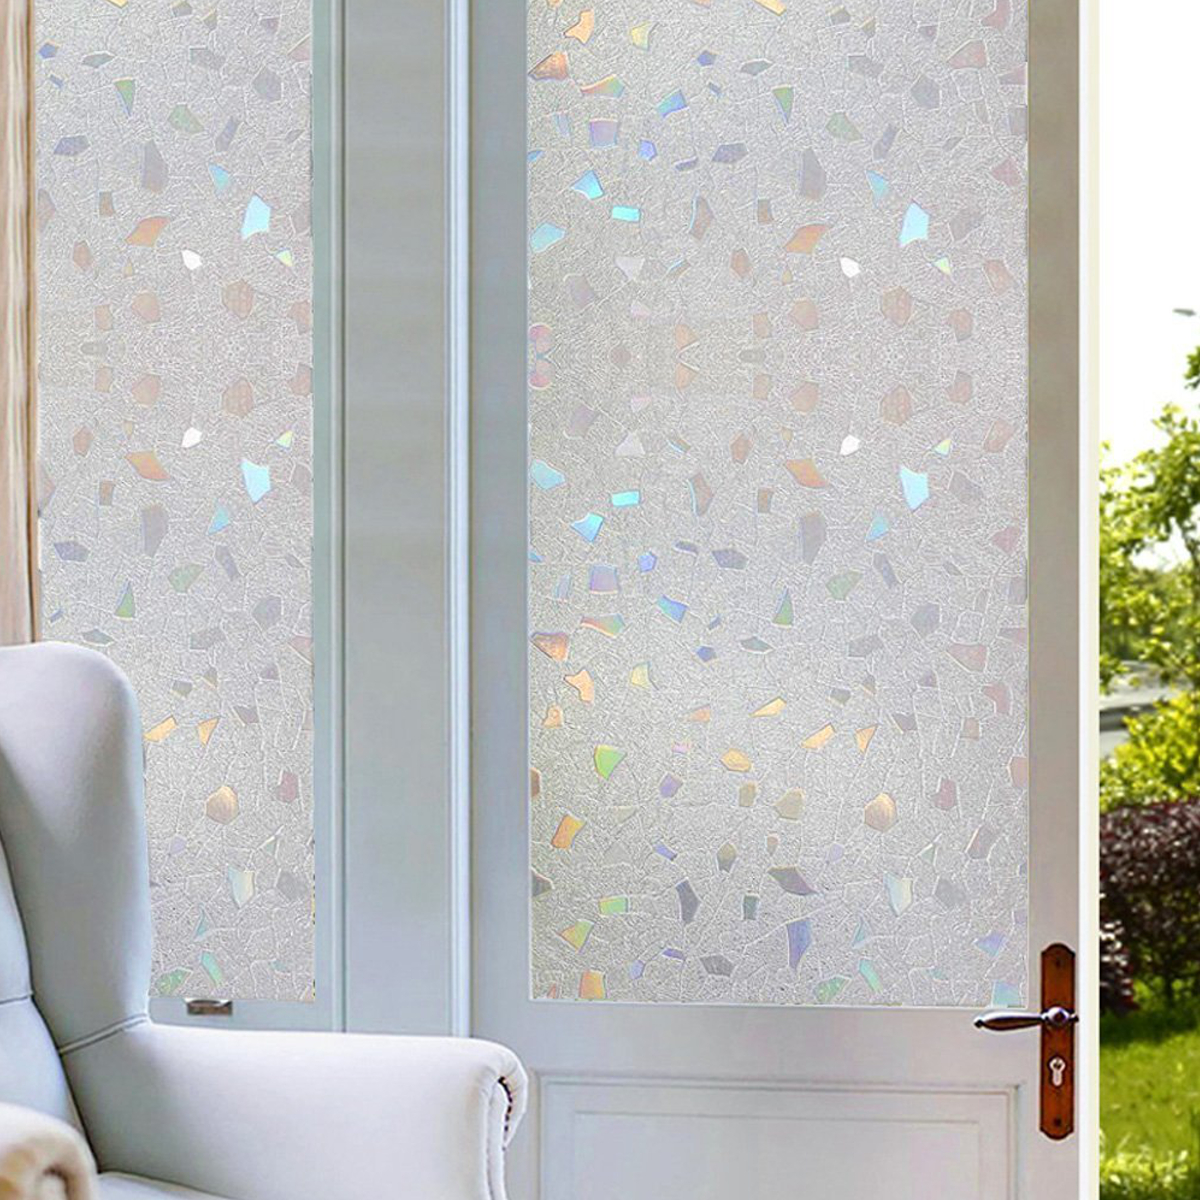 Decorative window film walmart jet wood planer